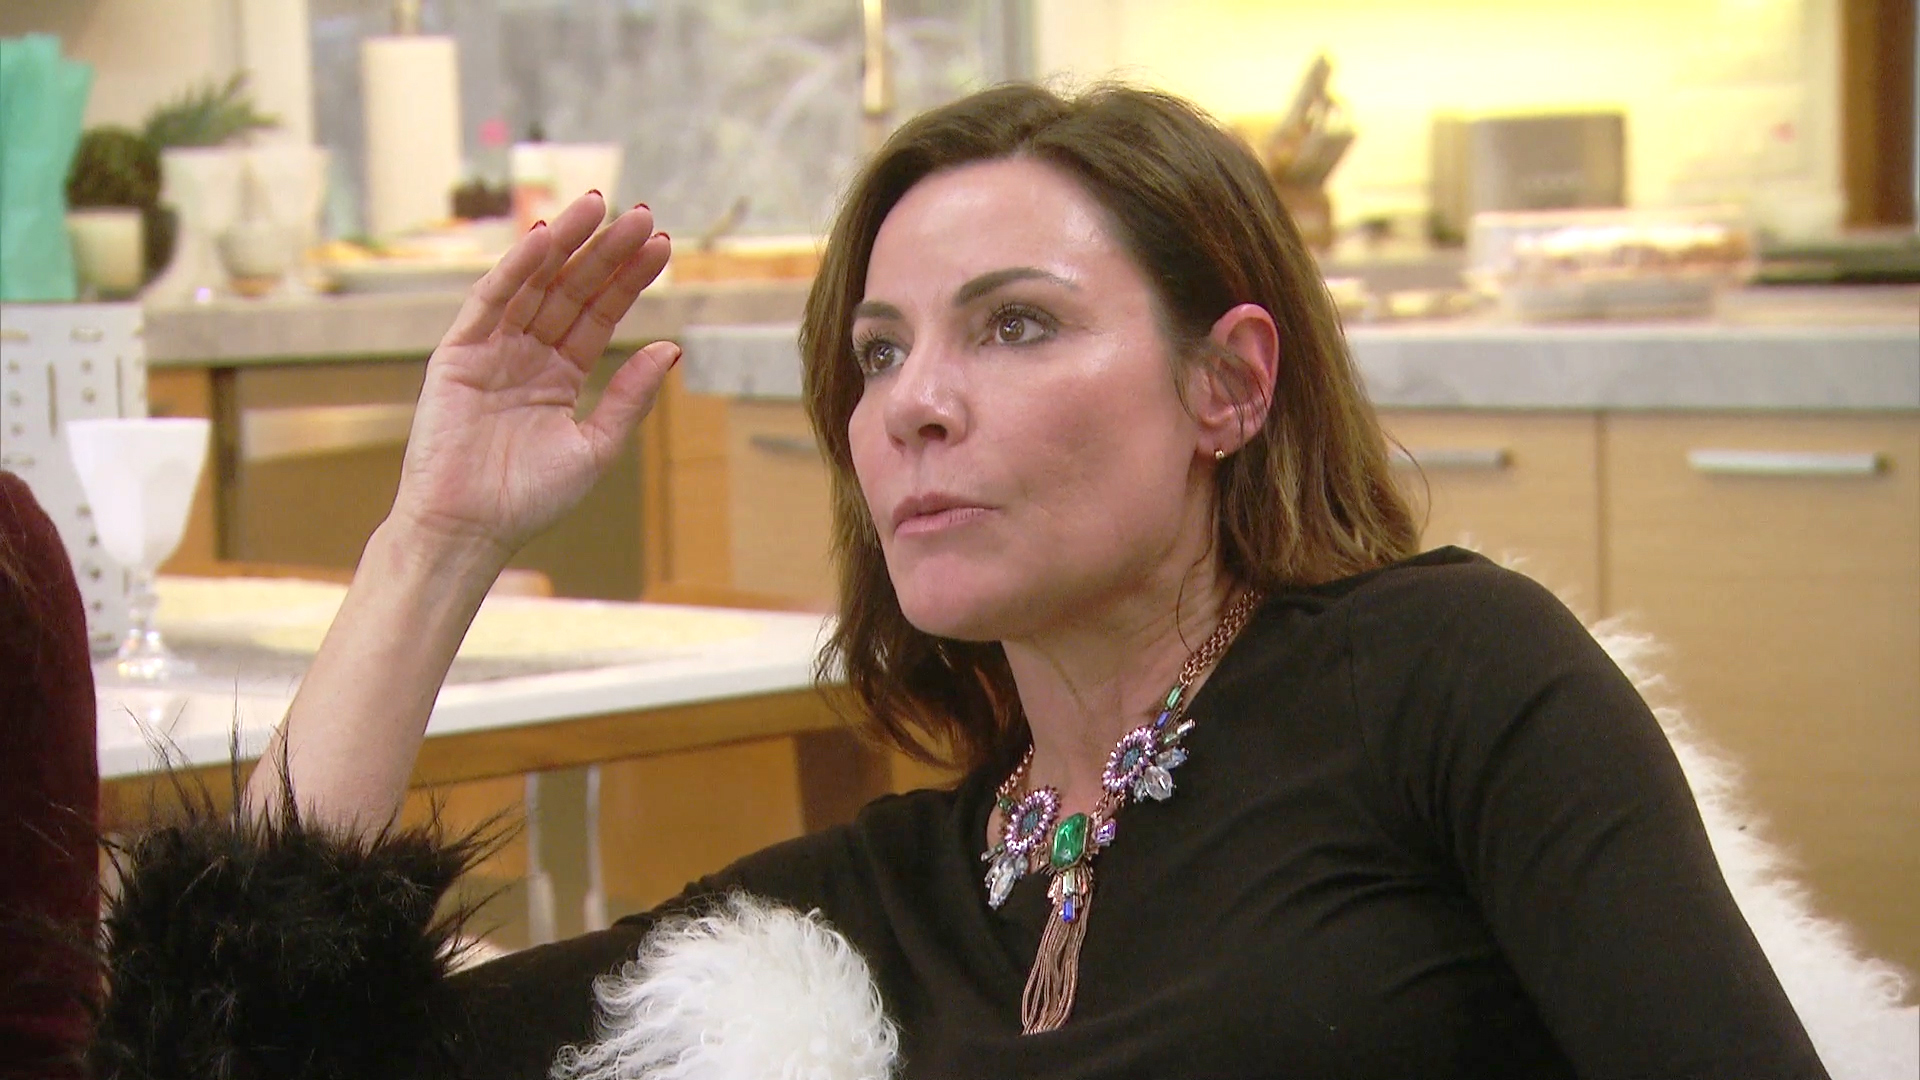 Next on RHONY: A Night Out in Kingston